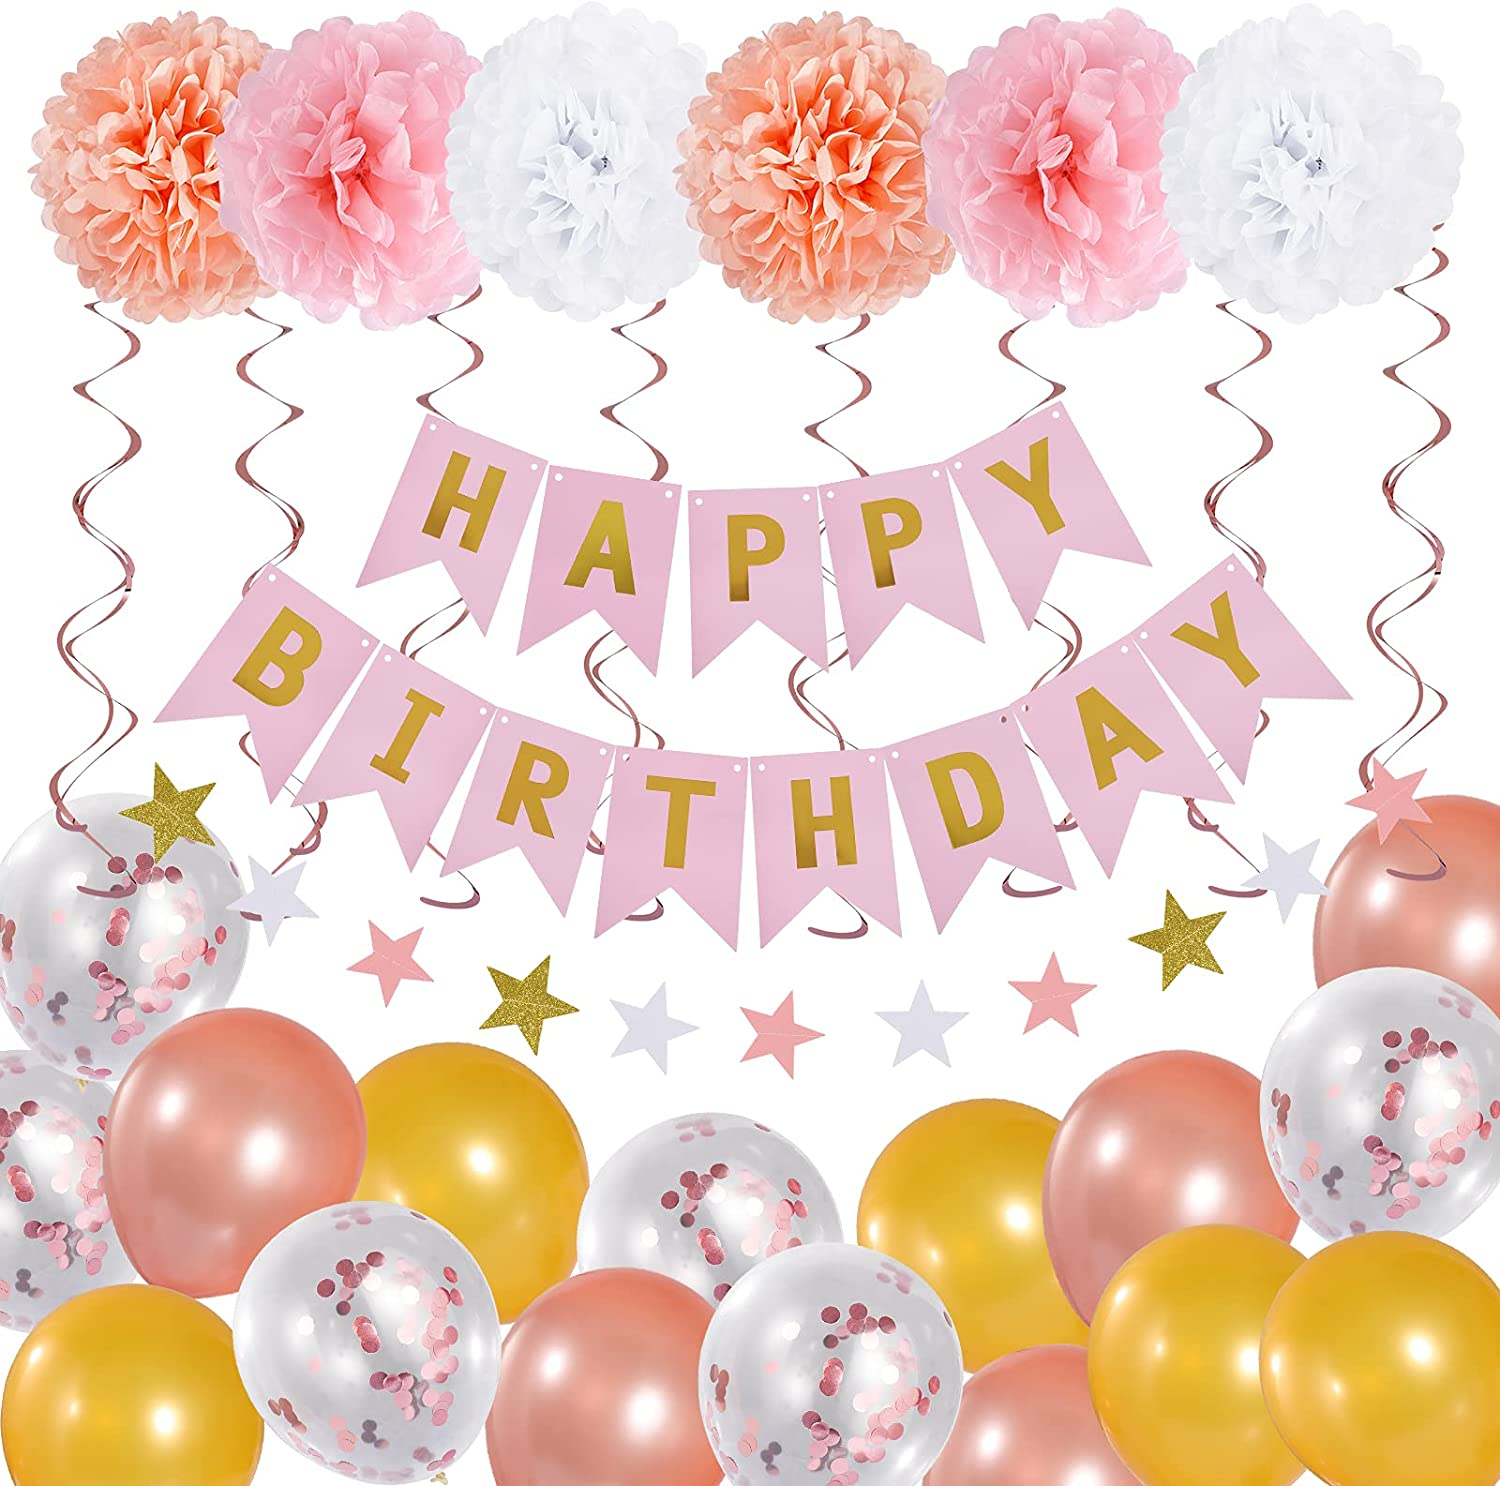 Garma Birthday Decorations, Birthday Party Supplies for Girl and Women Include Happy Birthday Banners Pink Rose Gold Balloons for 18th 19th 20th 21st 22nd 24th 25th 30th 40th 45th 50th 60th 70th Birthday Decor